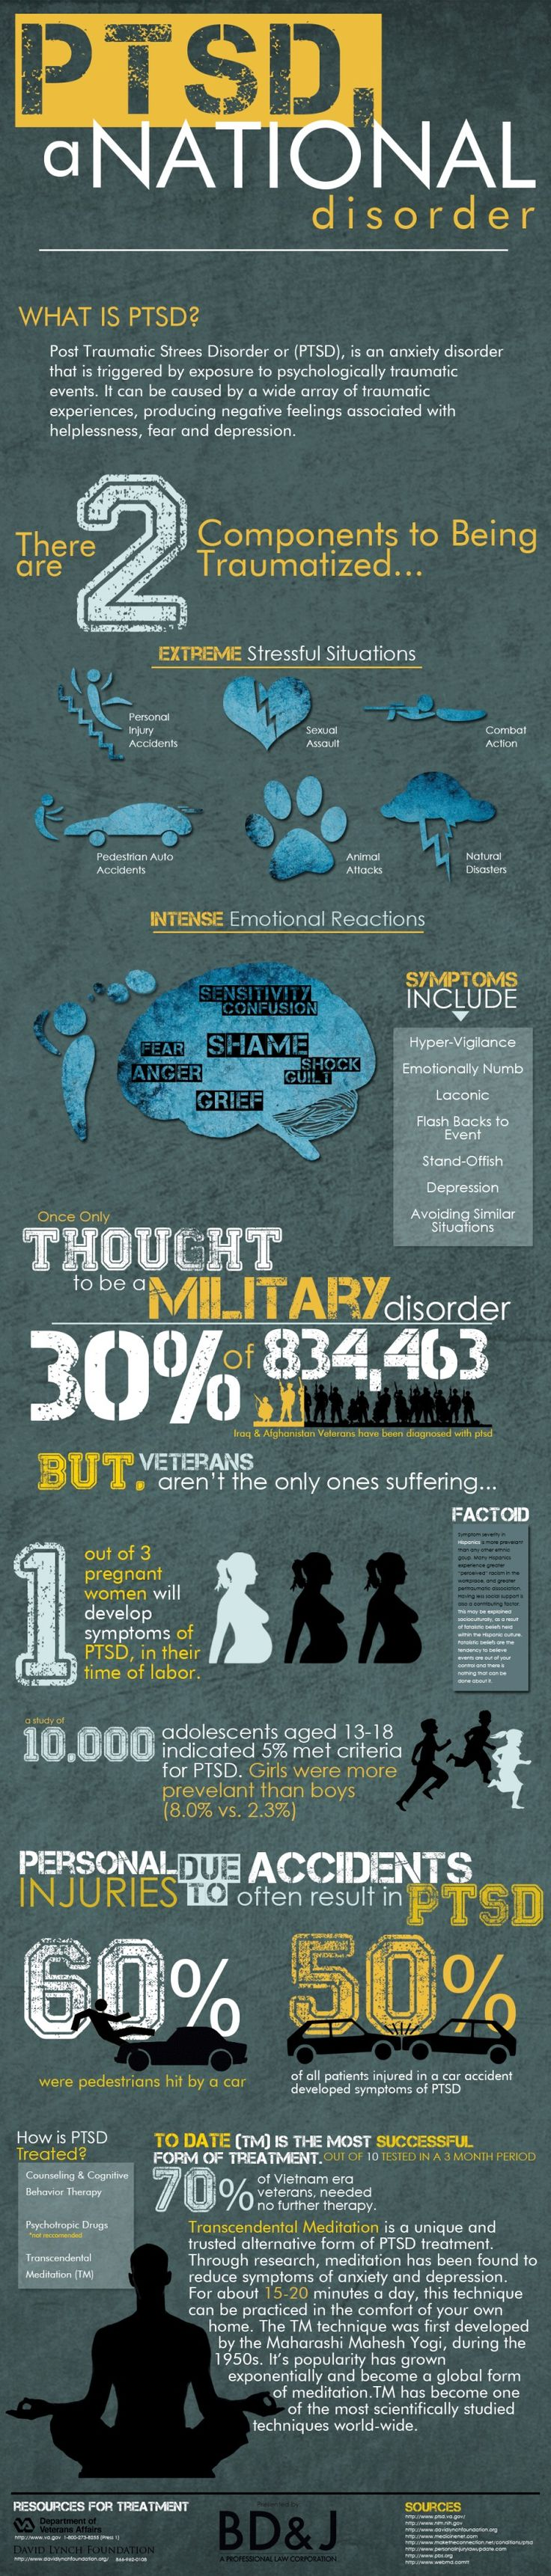 PTSD, A National Disorder - good info on PTSD. Remiss in acknowledging EMDR as a highly successful treatment as well.